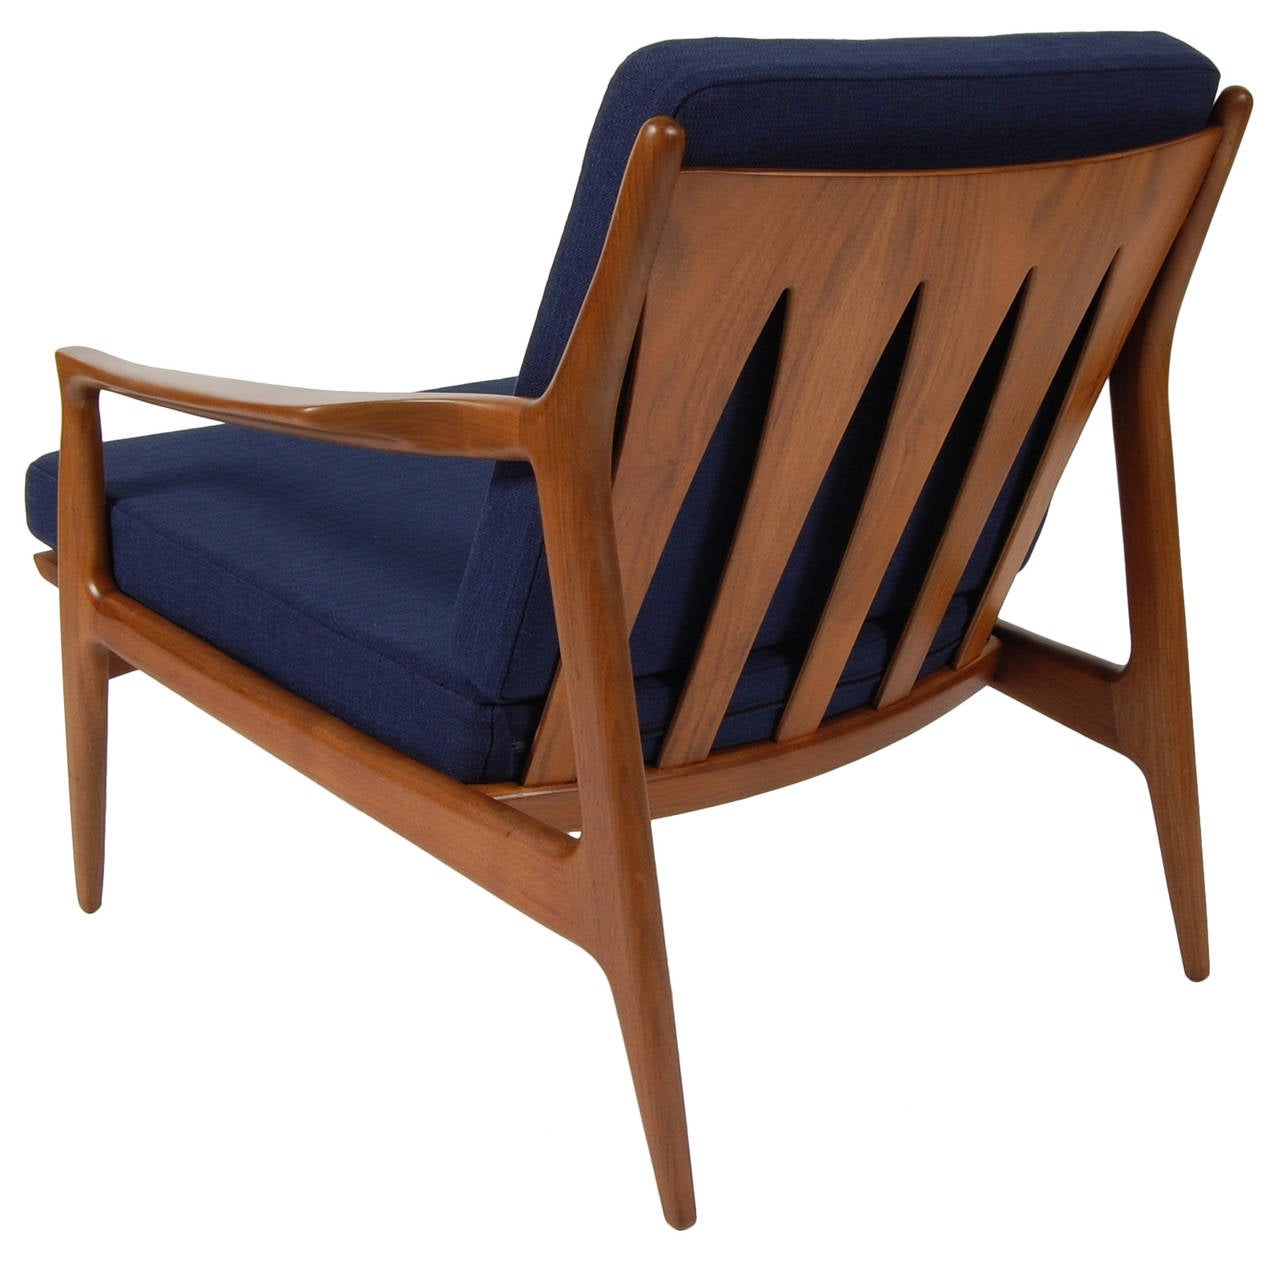 Milo Baughman Archie Lounge Chair at 1stdibs